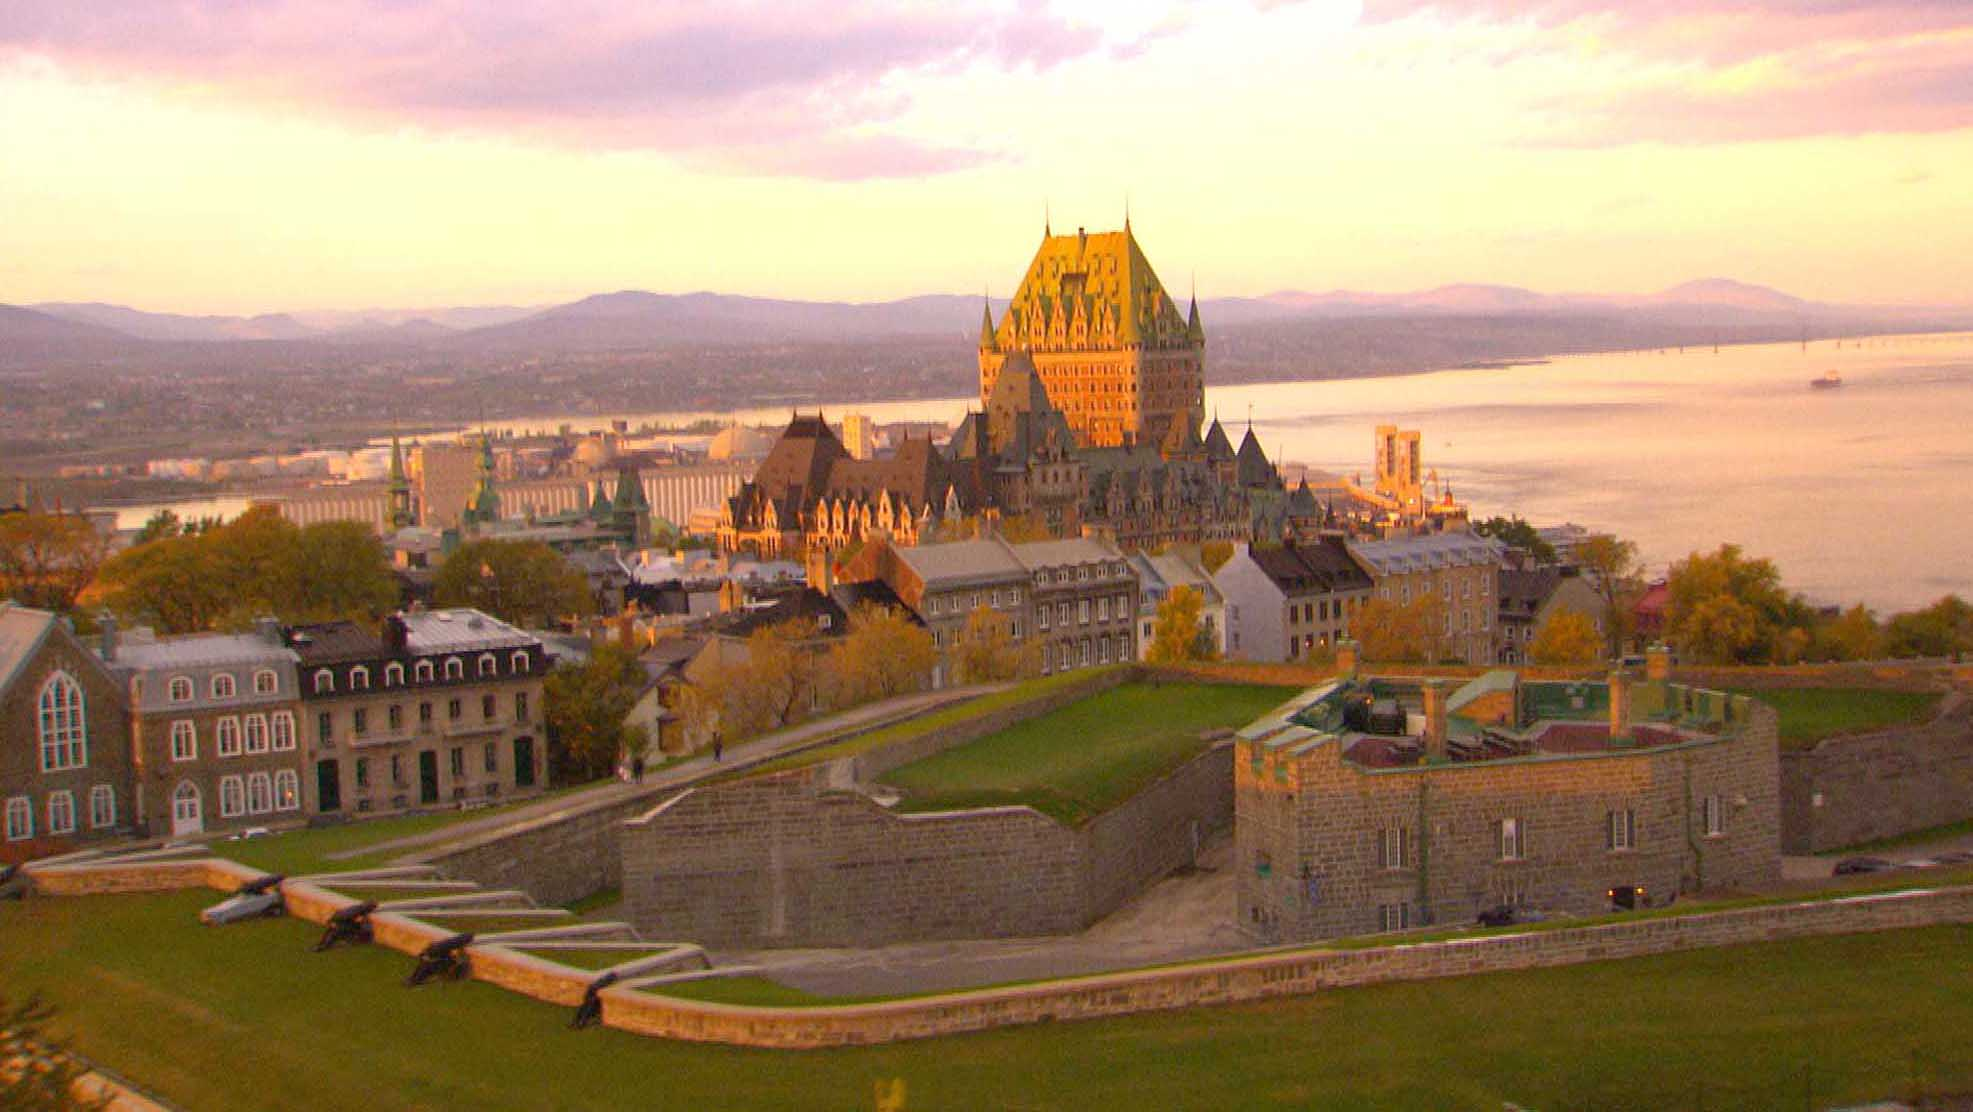 Another view of storied Chateau Frontenac at sunset in Quebec City.